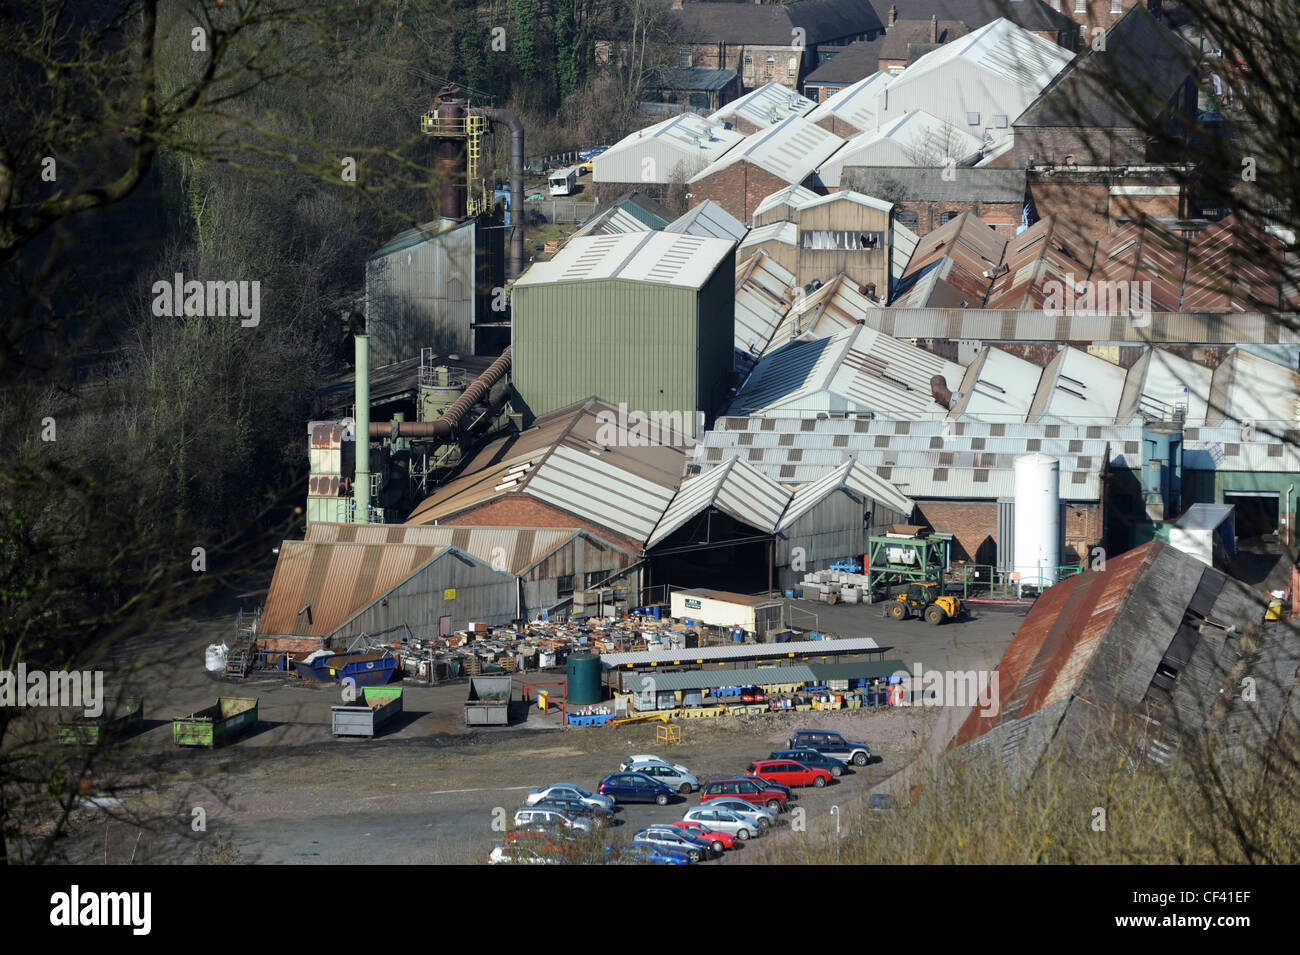 The Aga-Rayburn Factory in Coalbrookdale Telford. The factory is located on one of the original foundry sites of - Stock Image